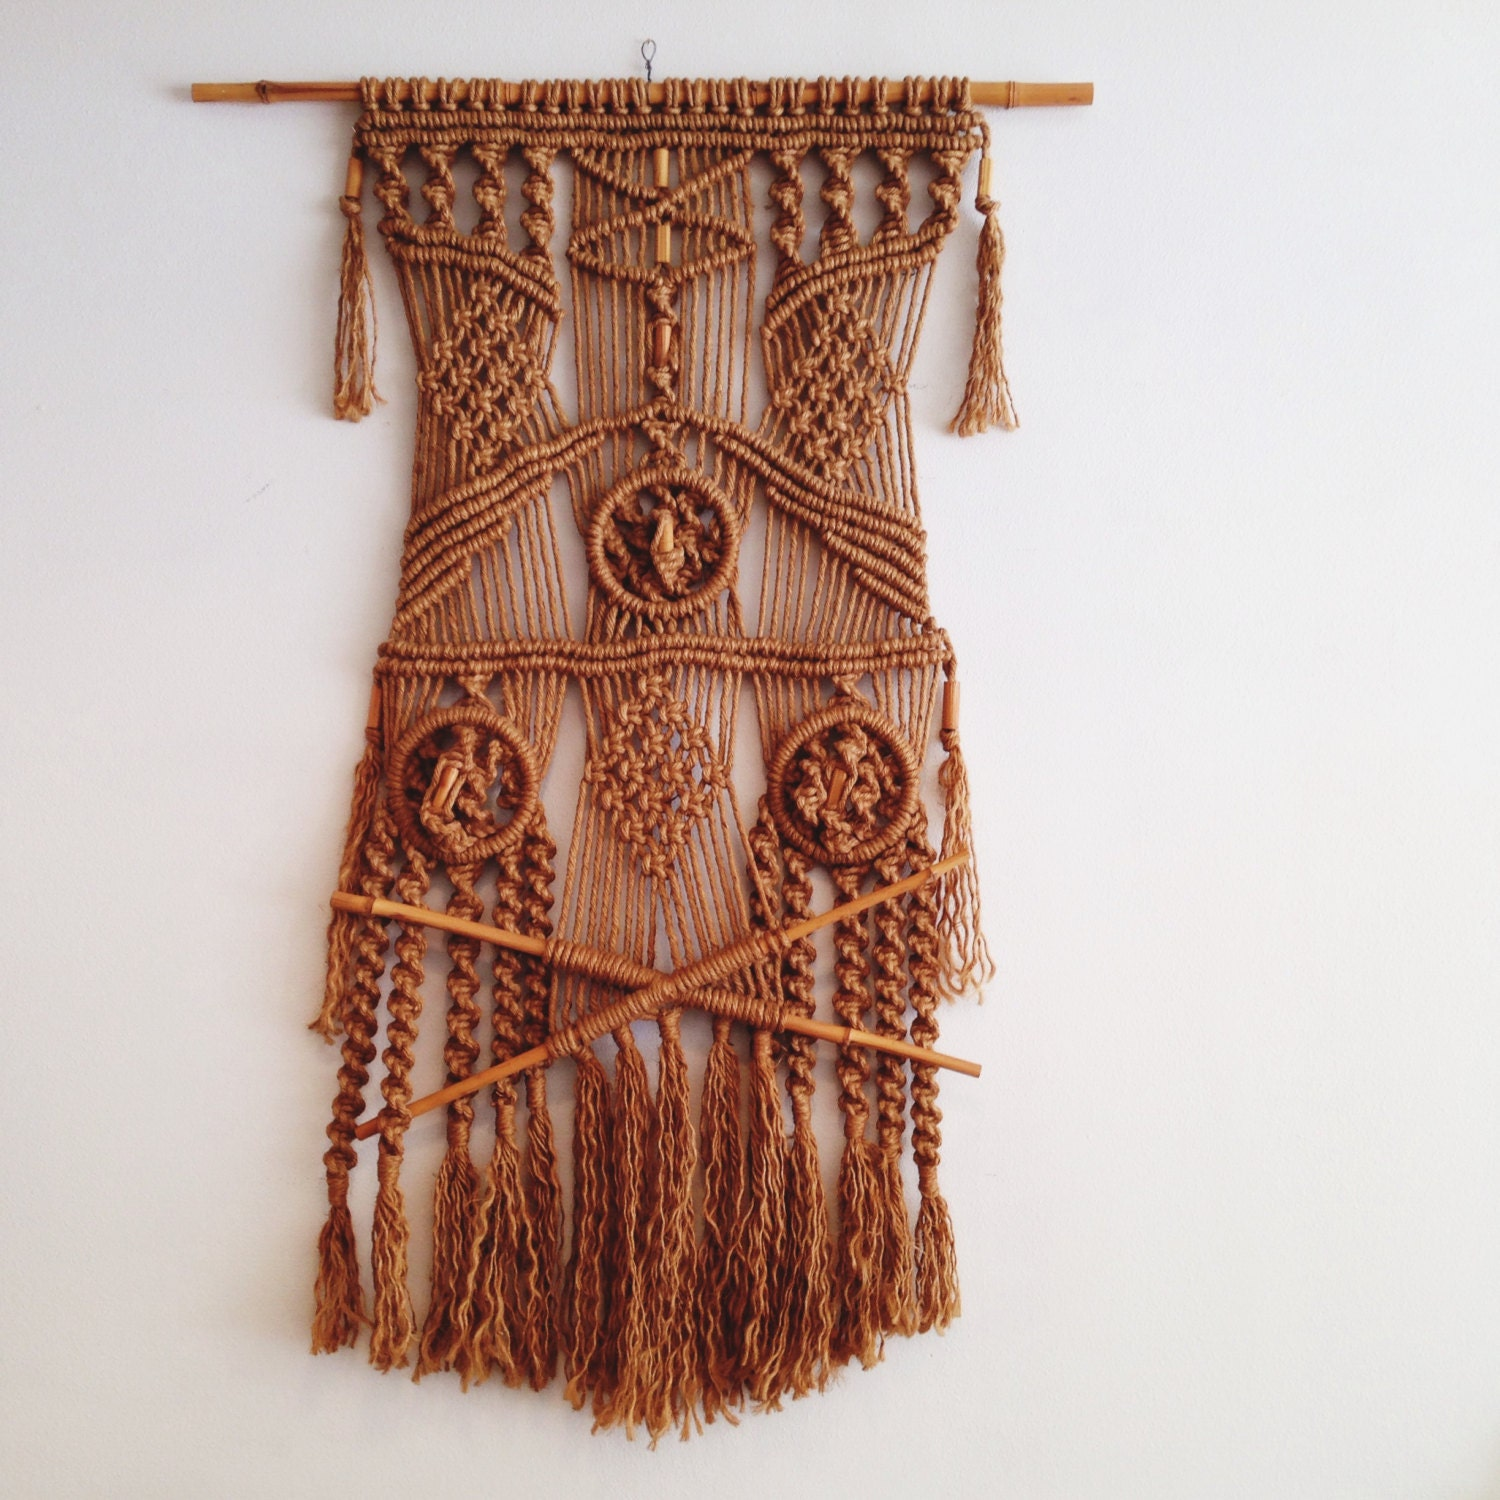 Giant Vintage 1970 S Macrame Wall Hanging Textile Piece